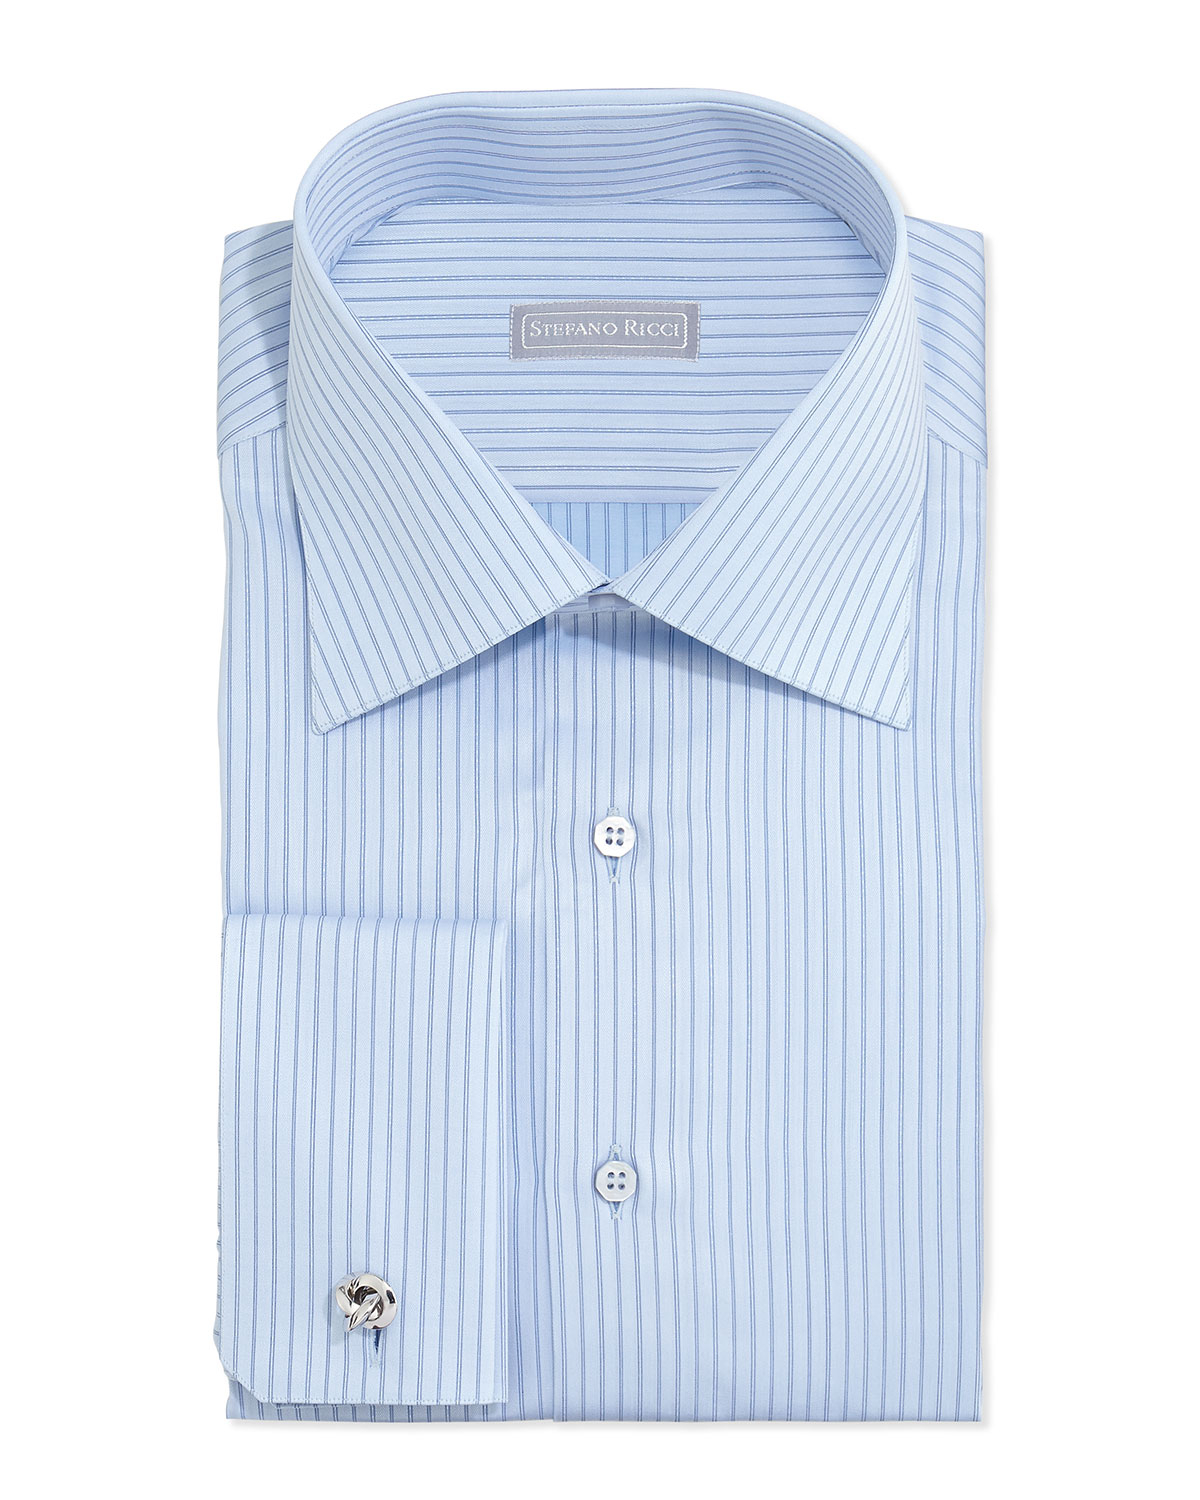 Stefano Ricci Striped French Cuff Solid Dress Shirt In